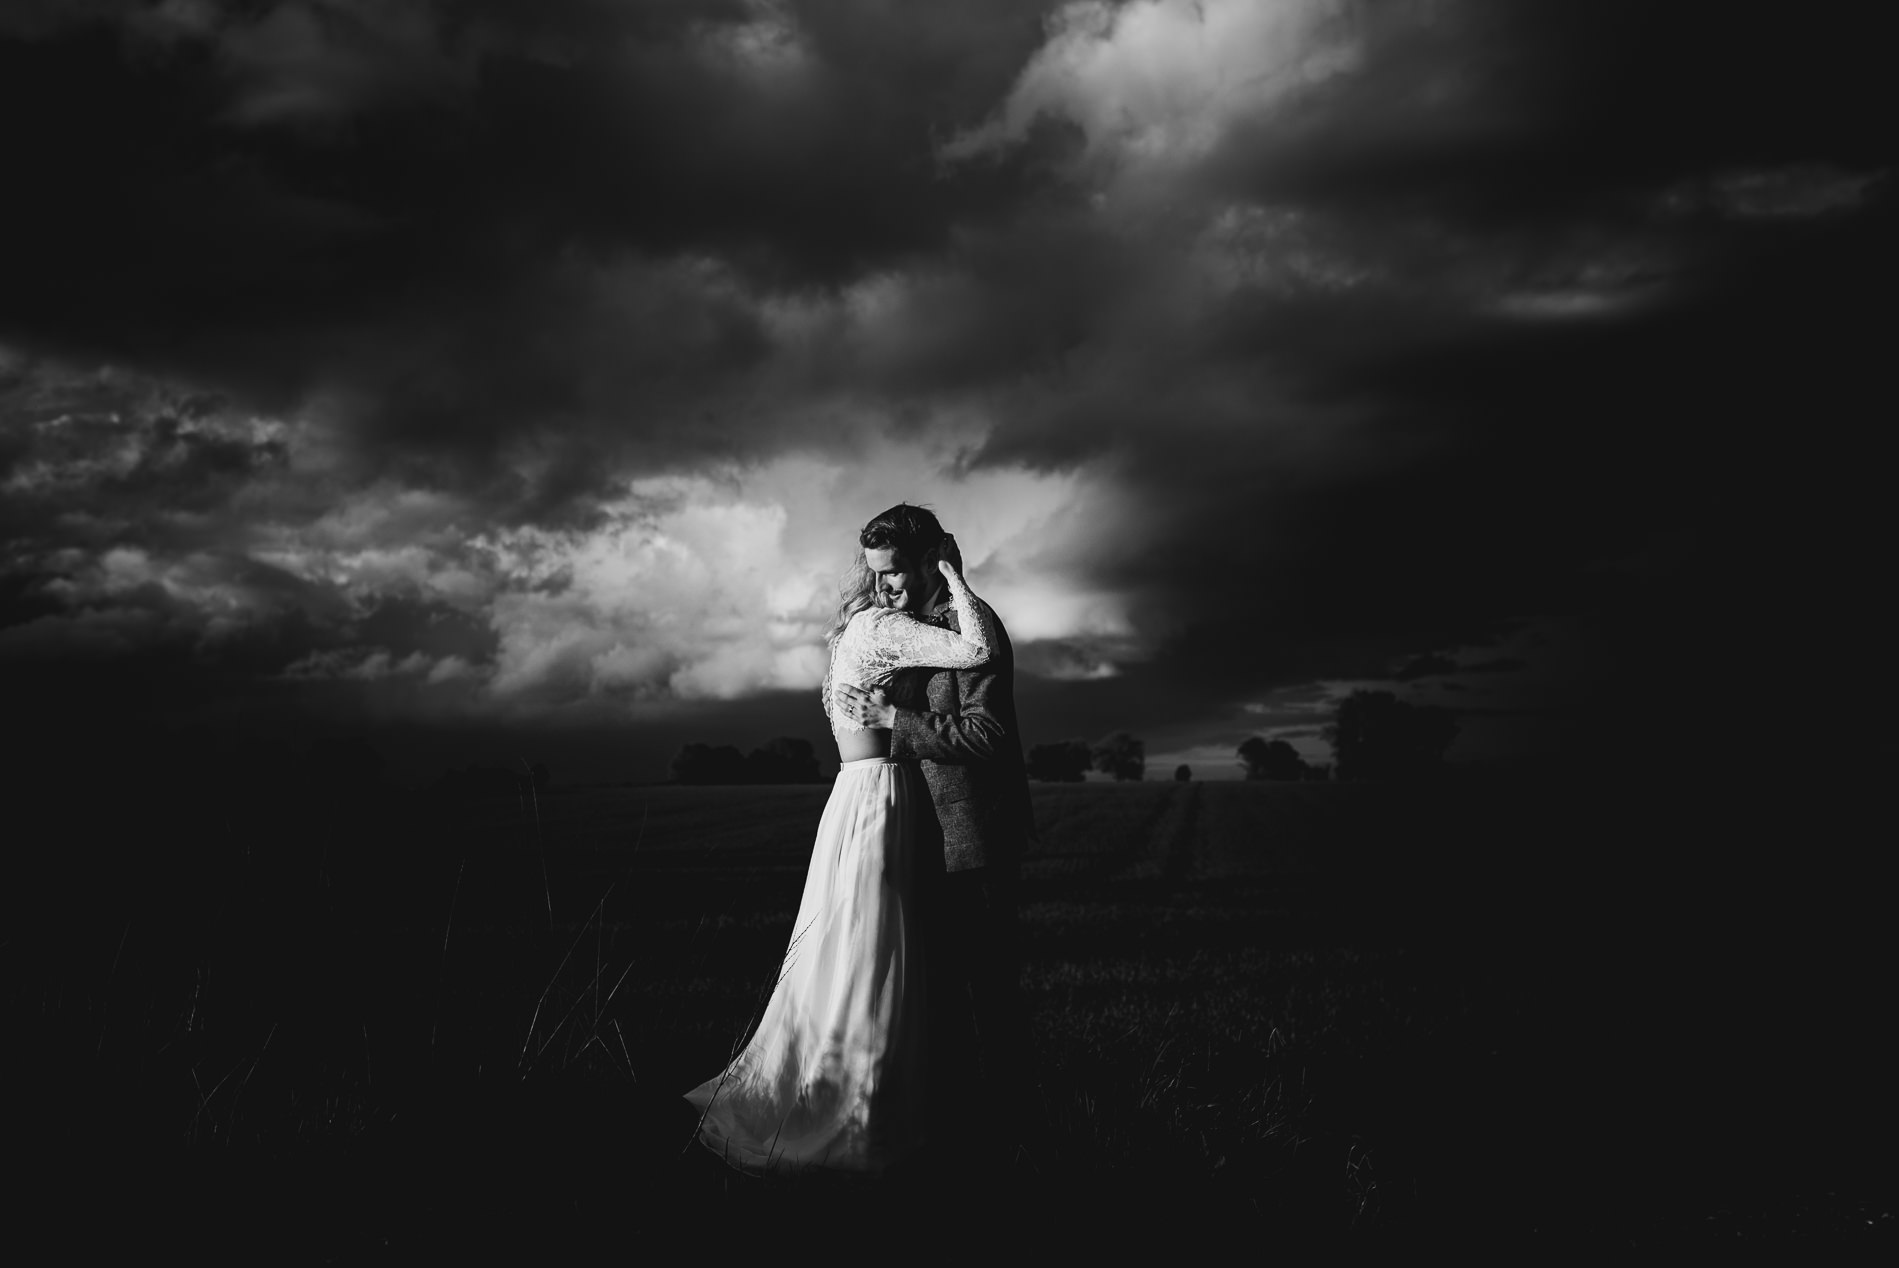 Essex Wedding Black and White Photography from Jess Soper